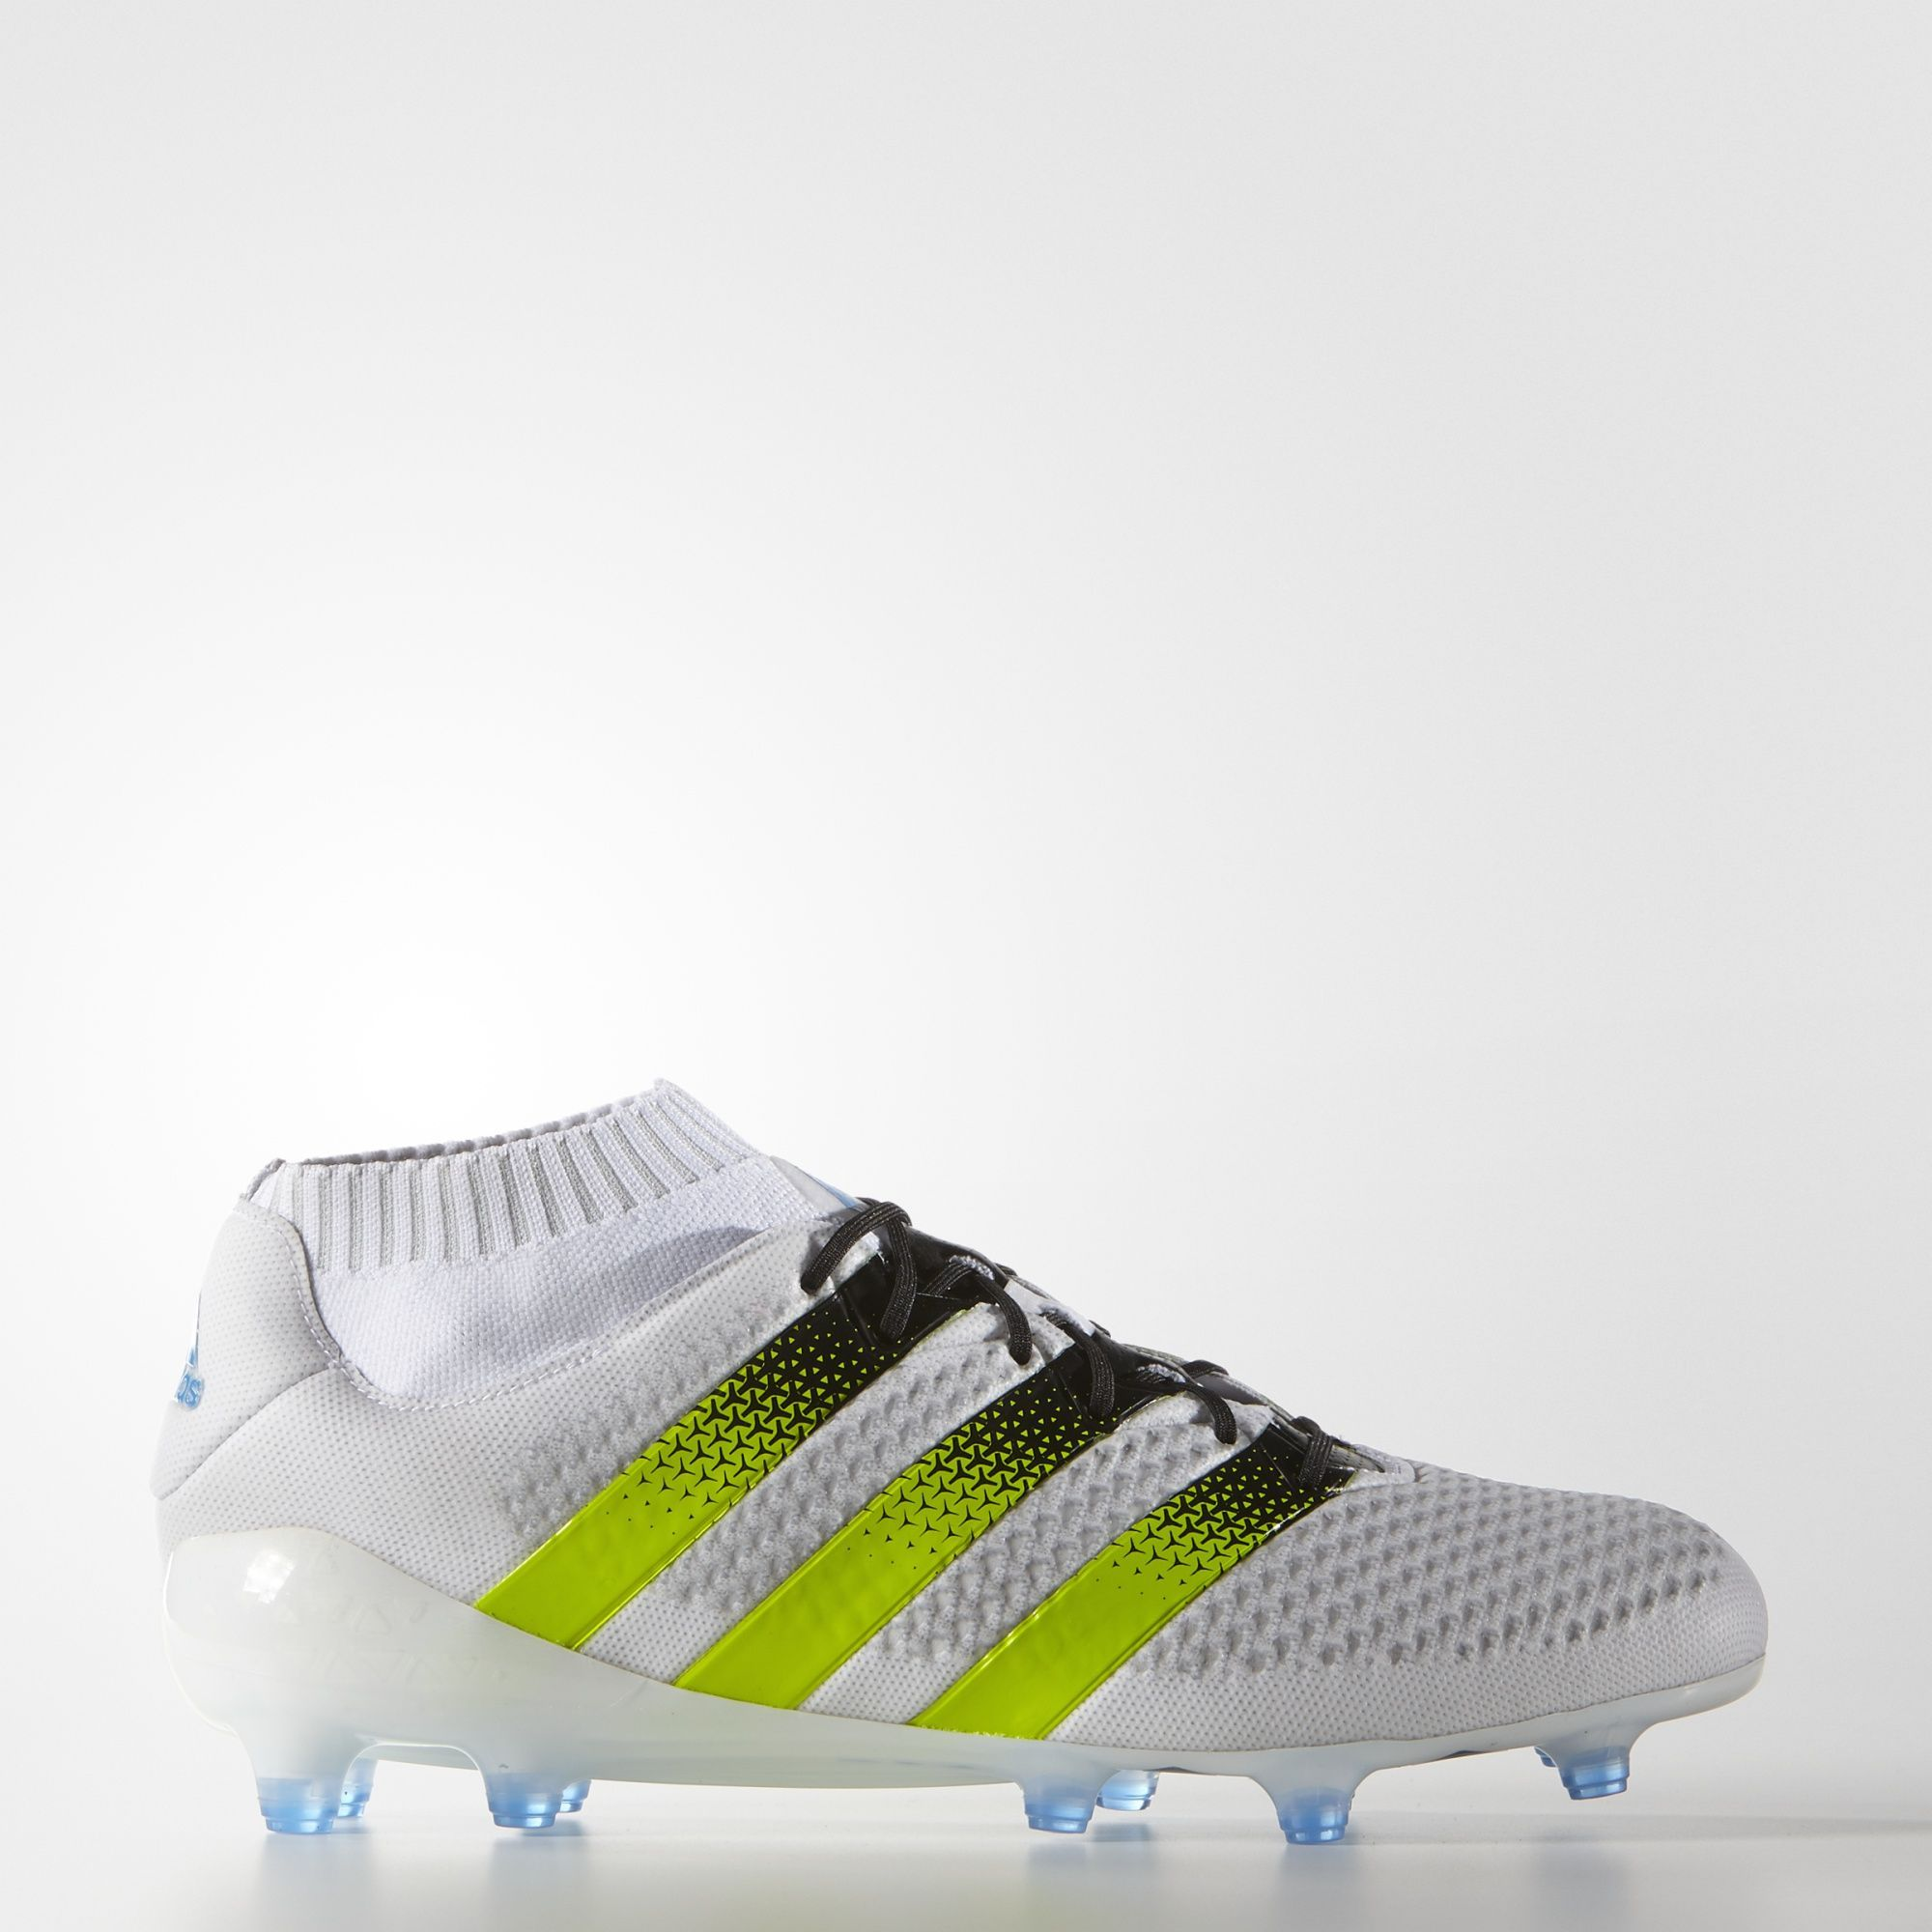 bf8361fbff4 ace primeknit cleats adidas us  ace primeknit cleats adidas us  adidas x 16.1  fg ag leather turbocharge white core black solar green